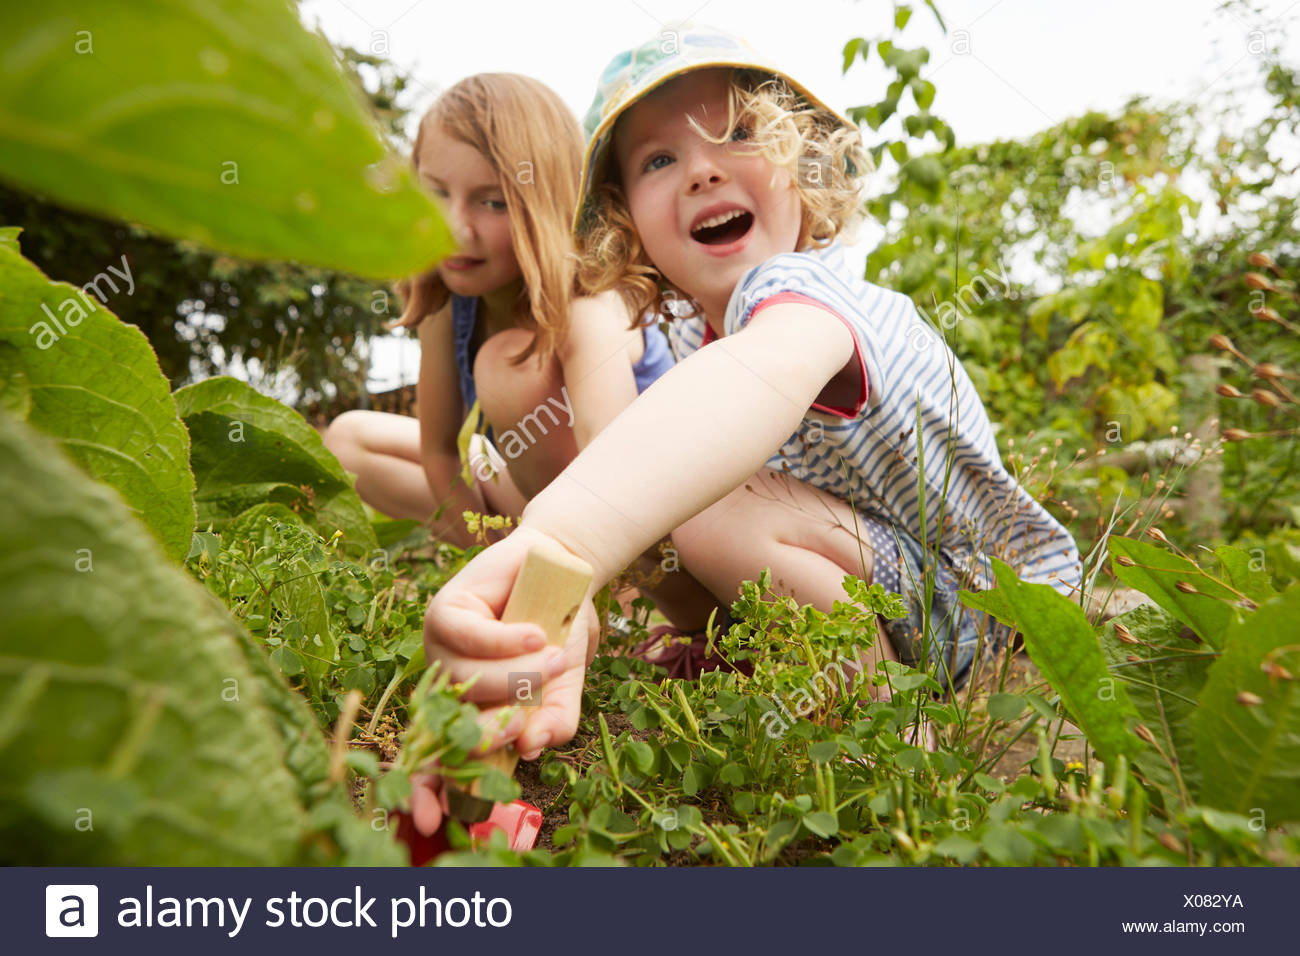 Two sisters crouching and digging in garden - Stock Image